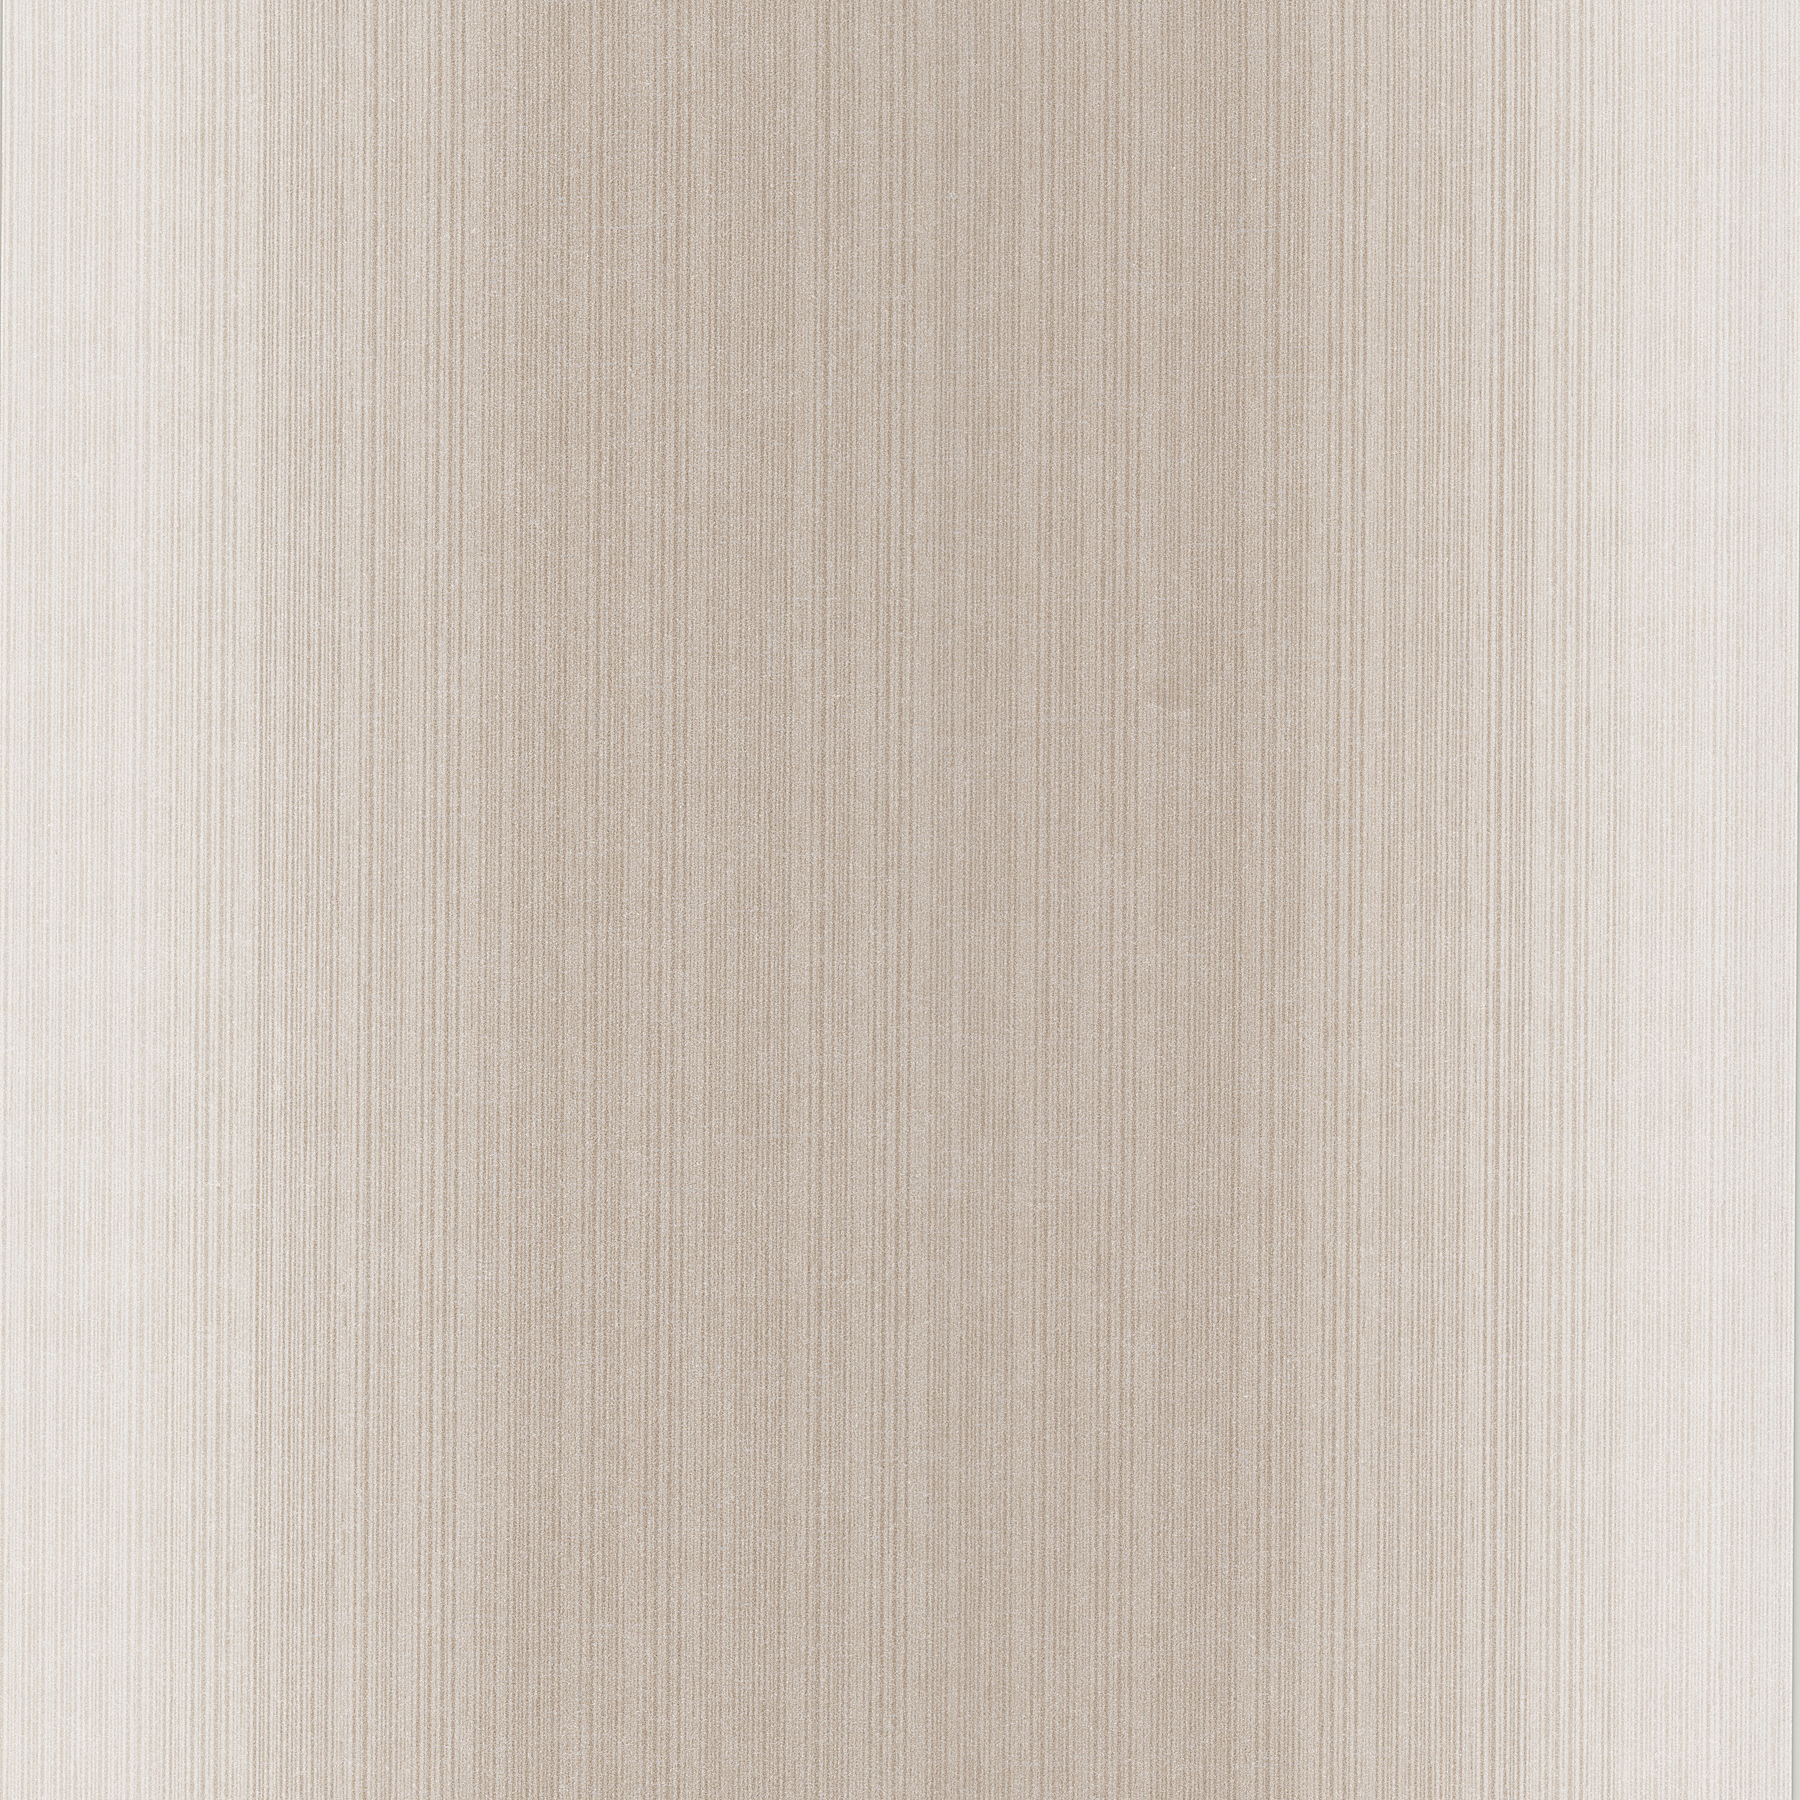 Picture of Blanch Beige Ombre Texture Wallpaper